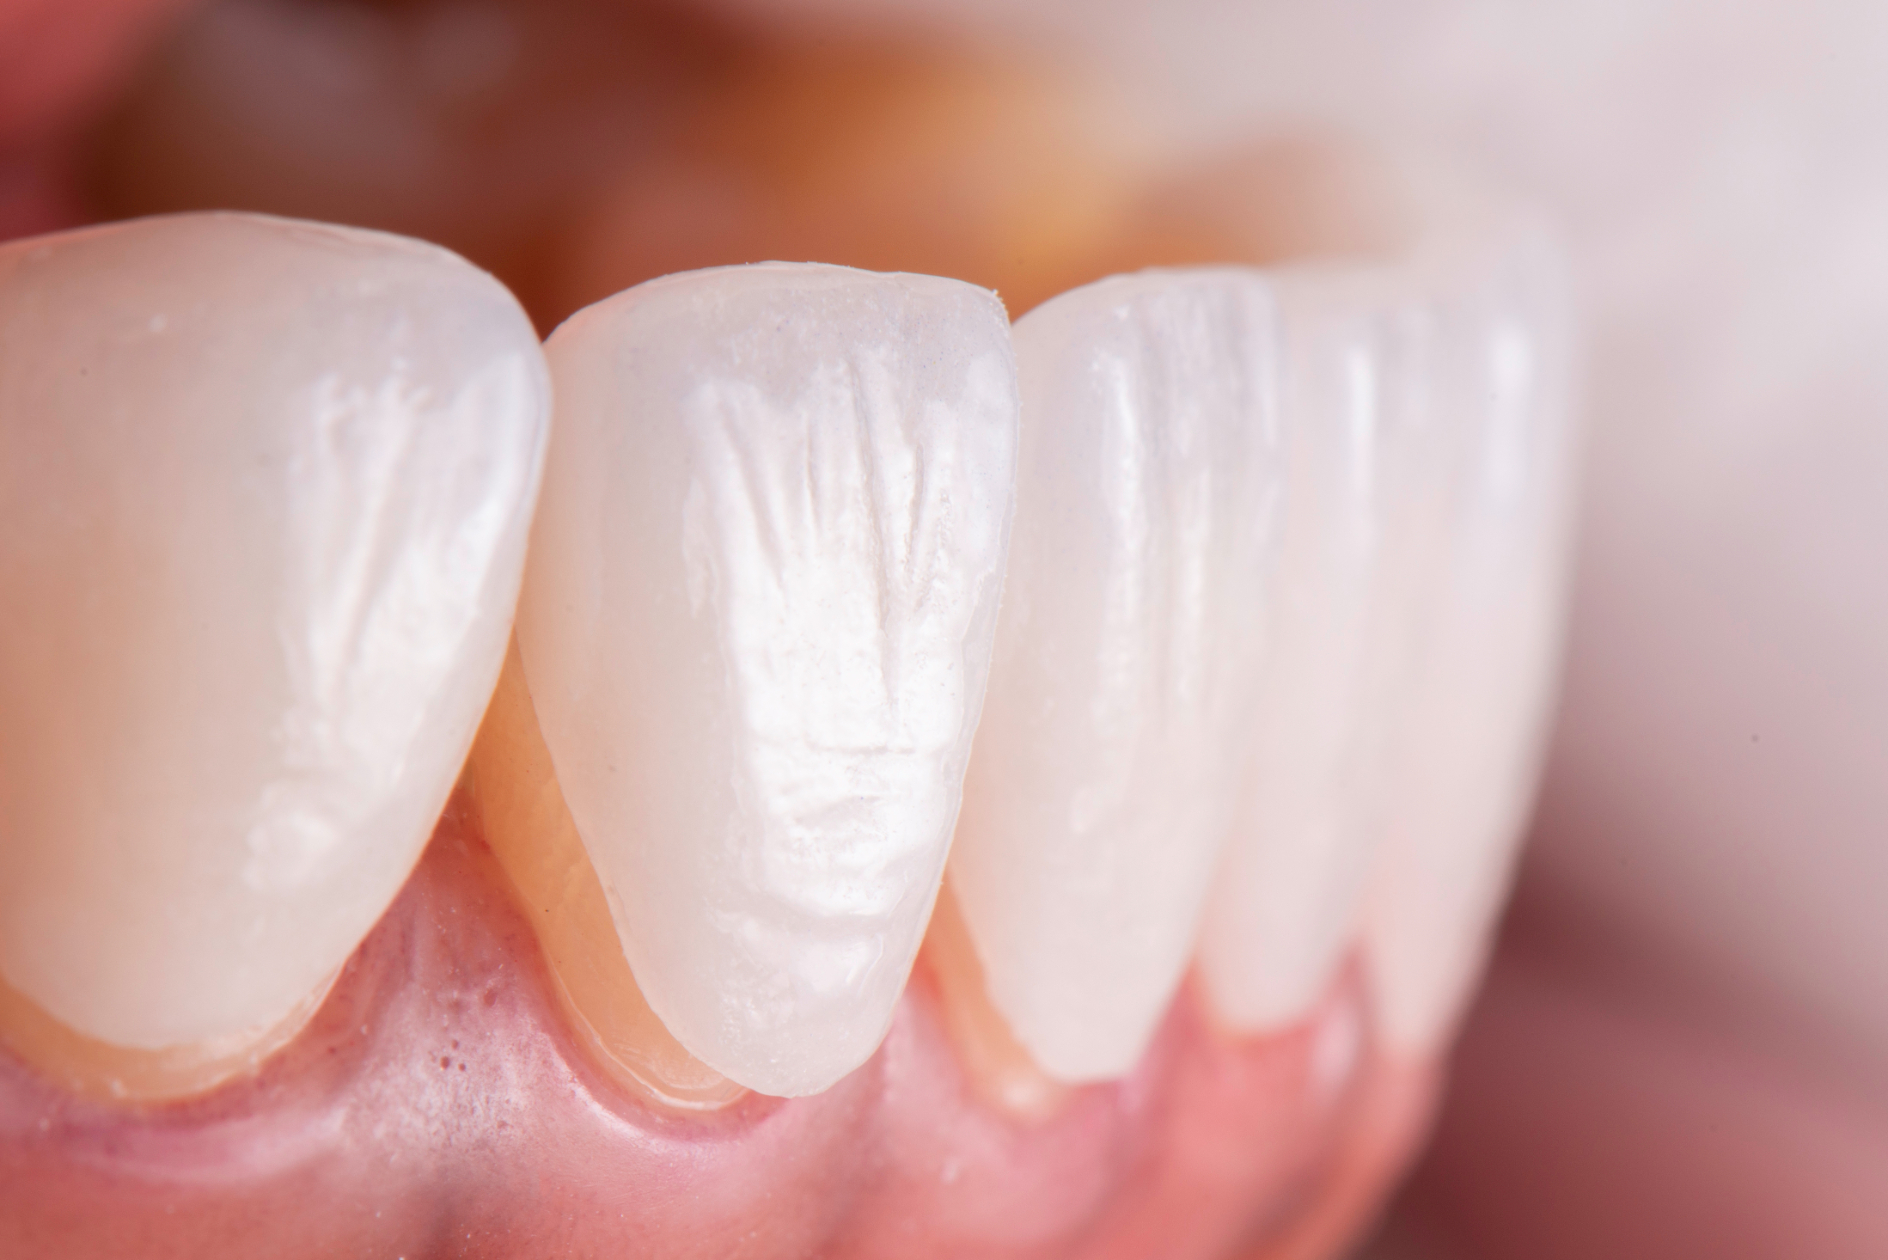 Generally, there are 2 types of veneers available: